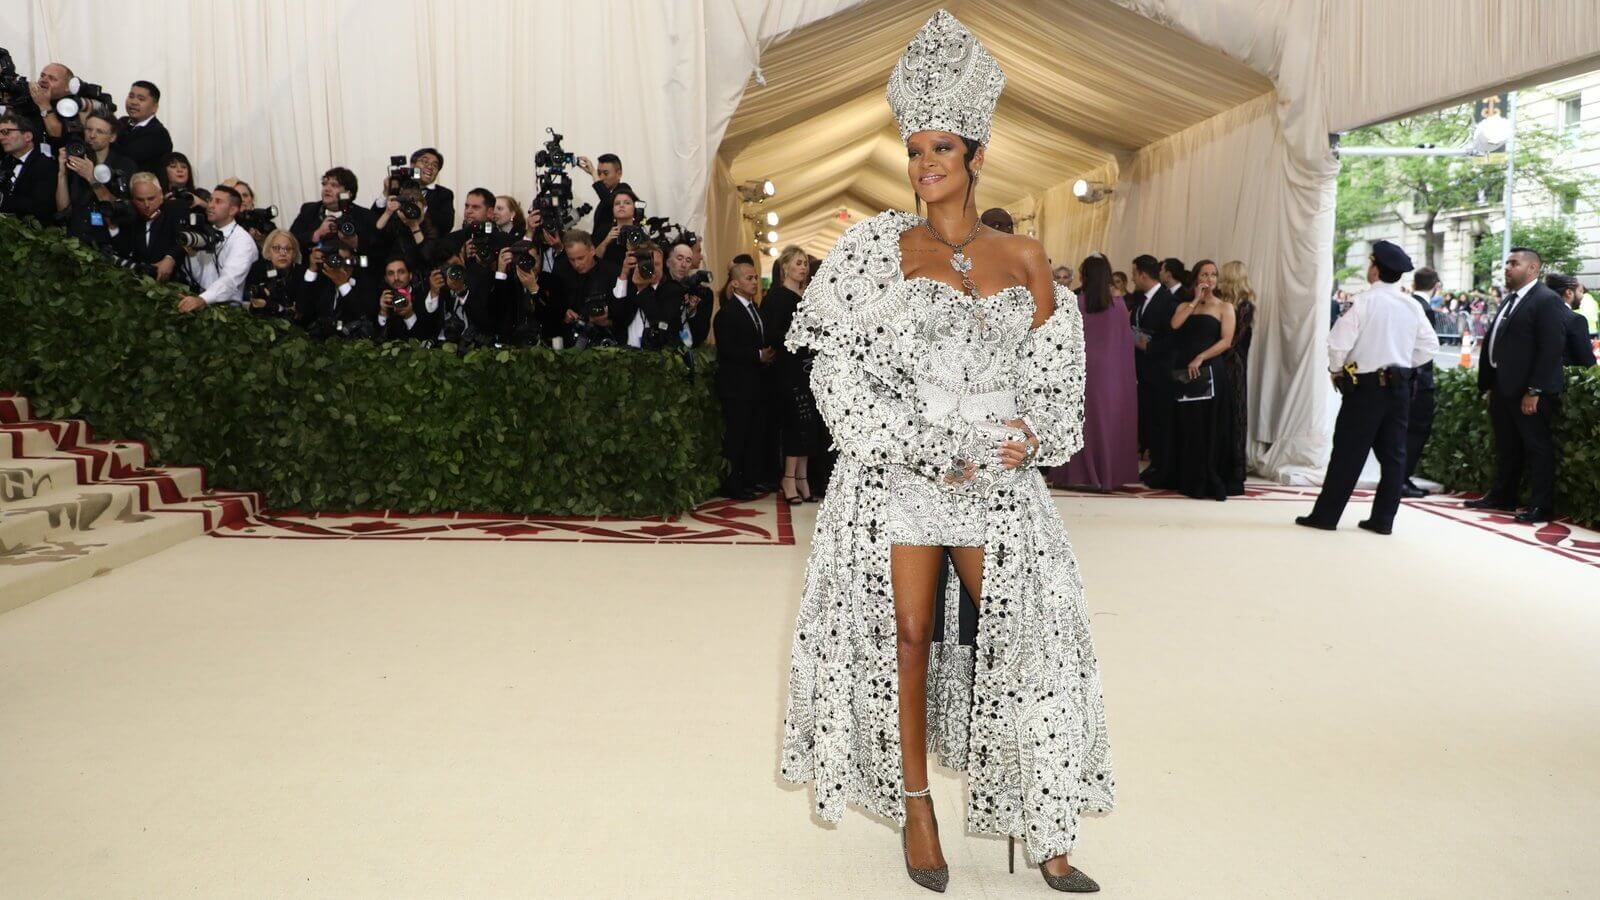 Take me to church: Los 15 looks más impactantes de la Met Gala 2018